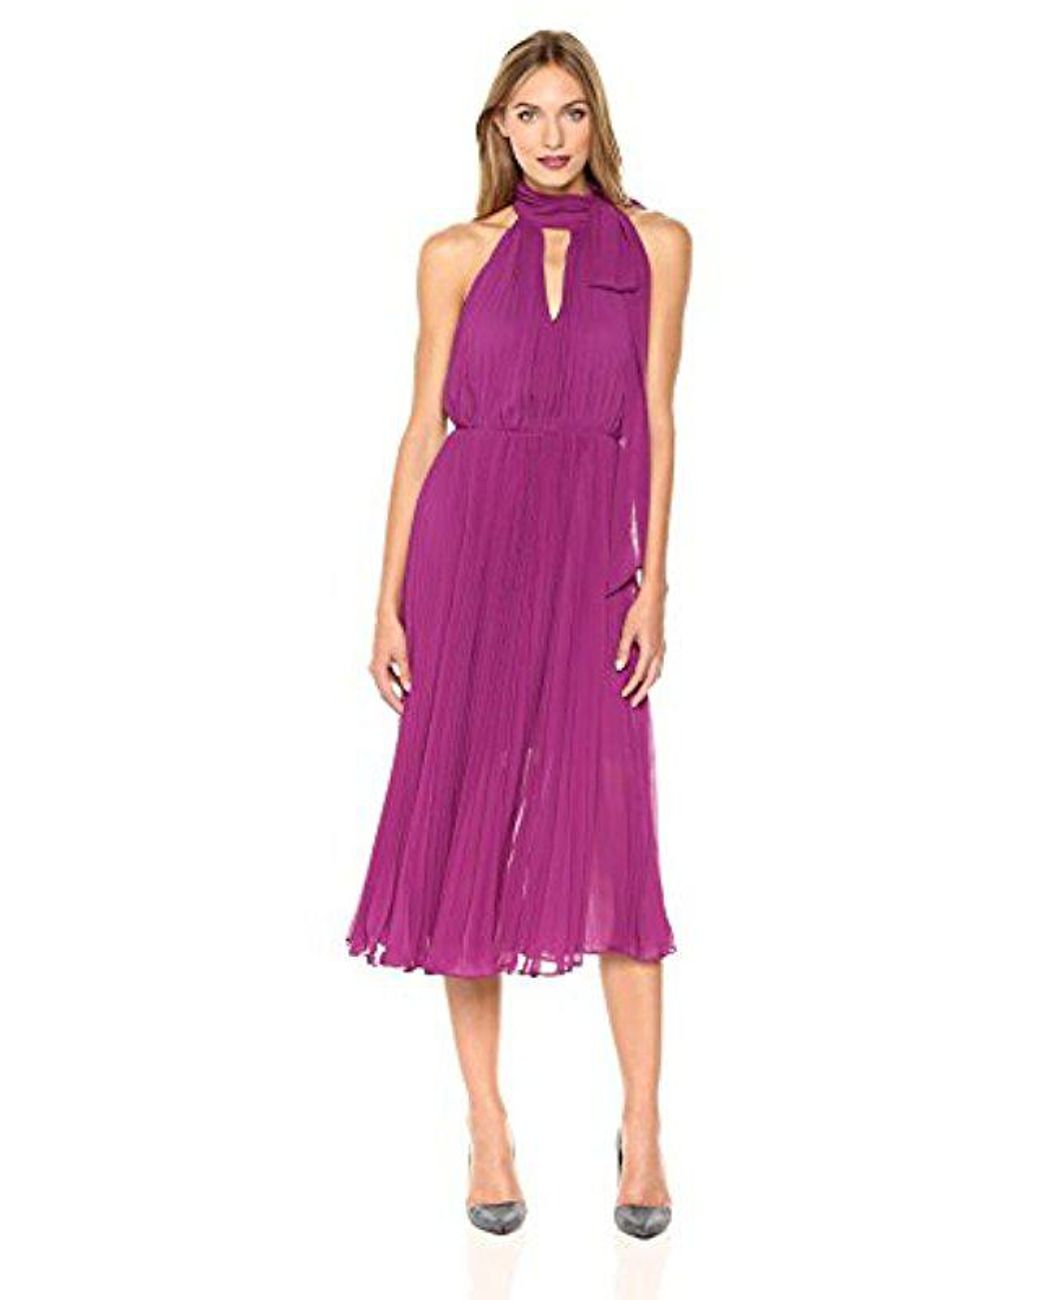 903a3a8d0883 Betsey Johnson Pleated Chiffon Halter Dress in Purple - Save 50% - Lyst